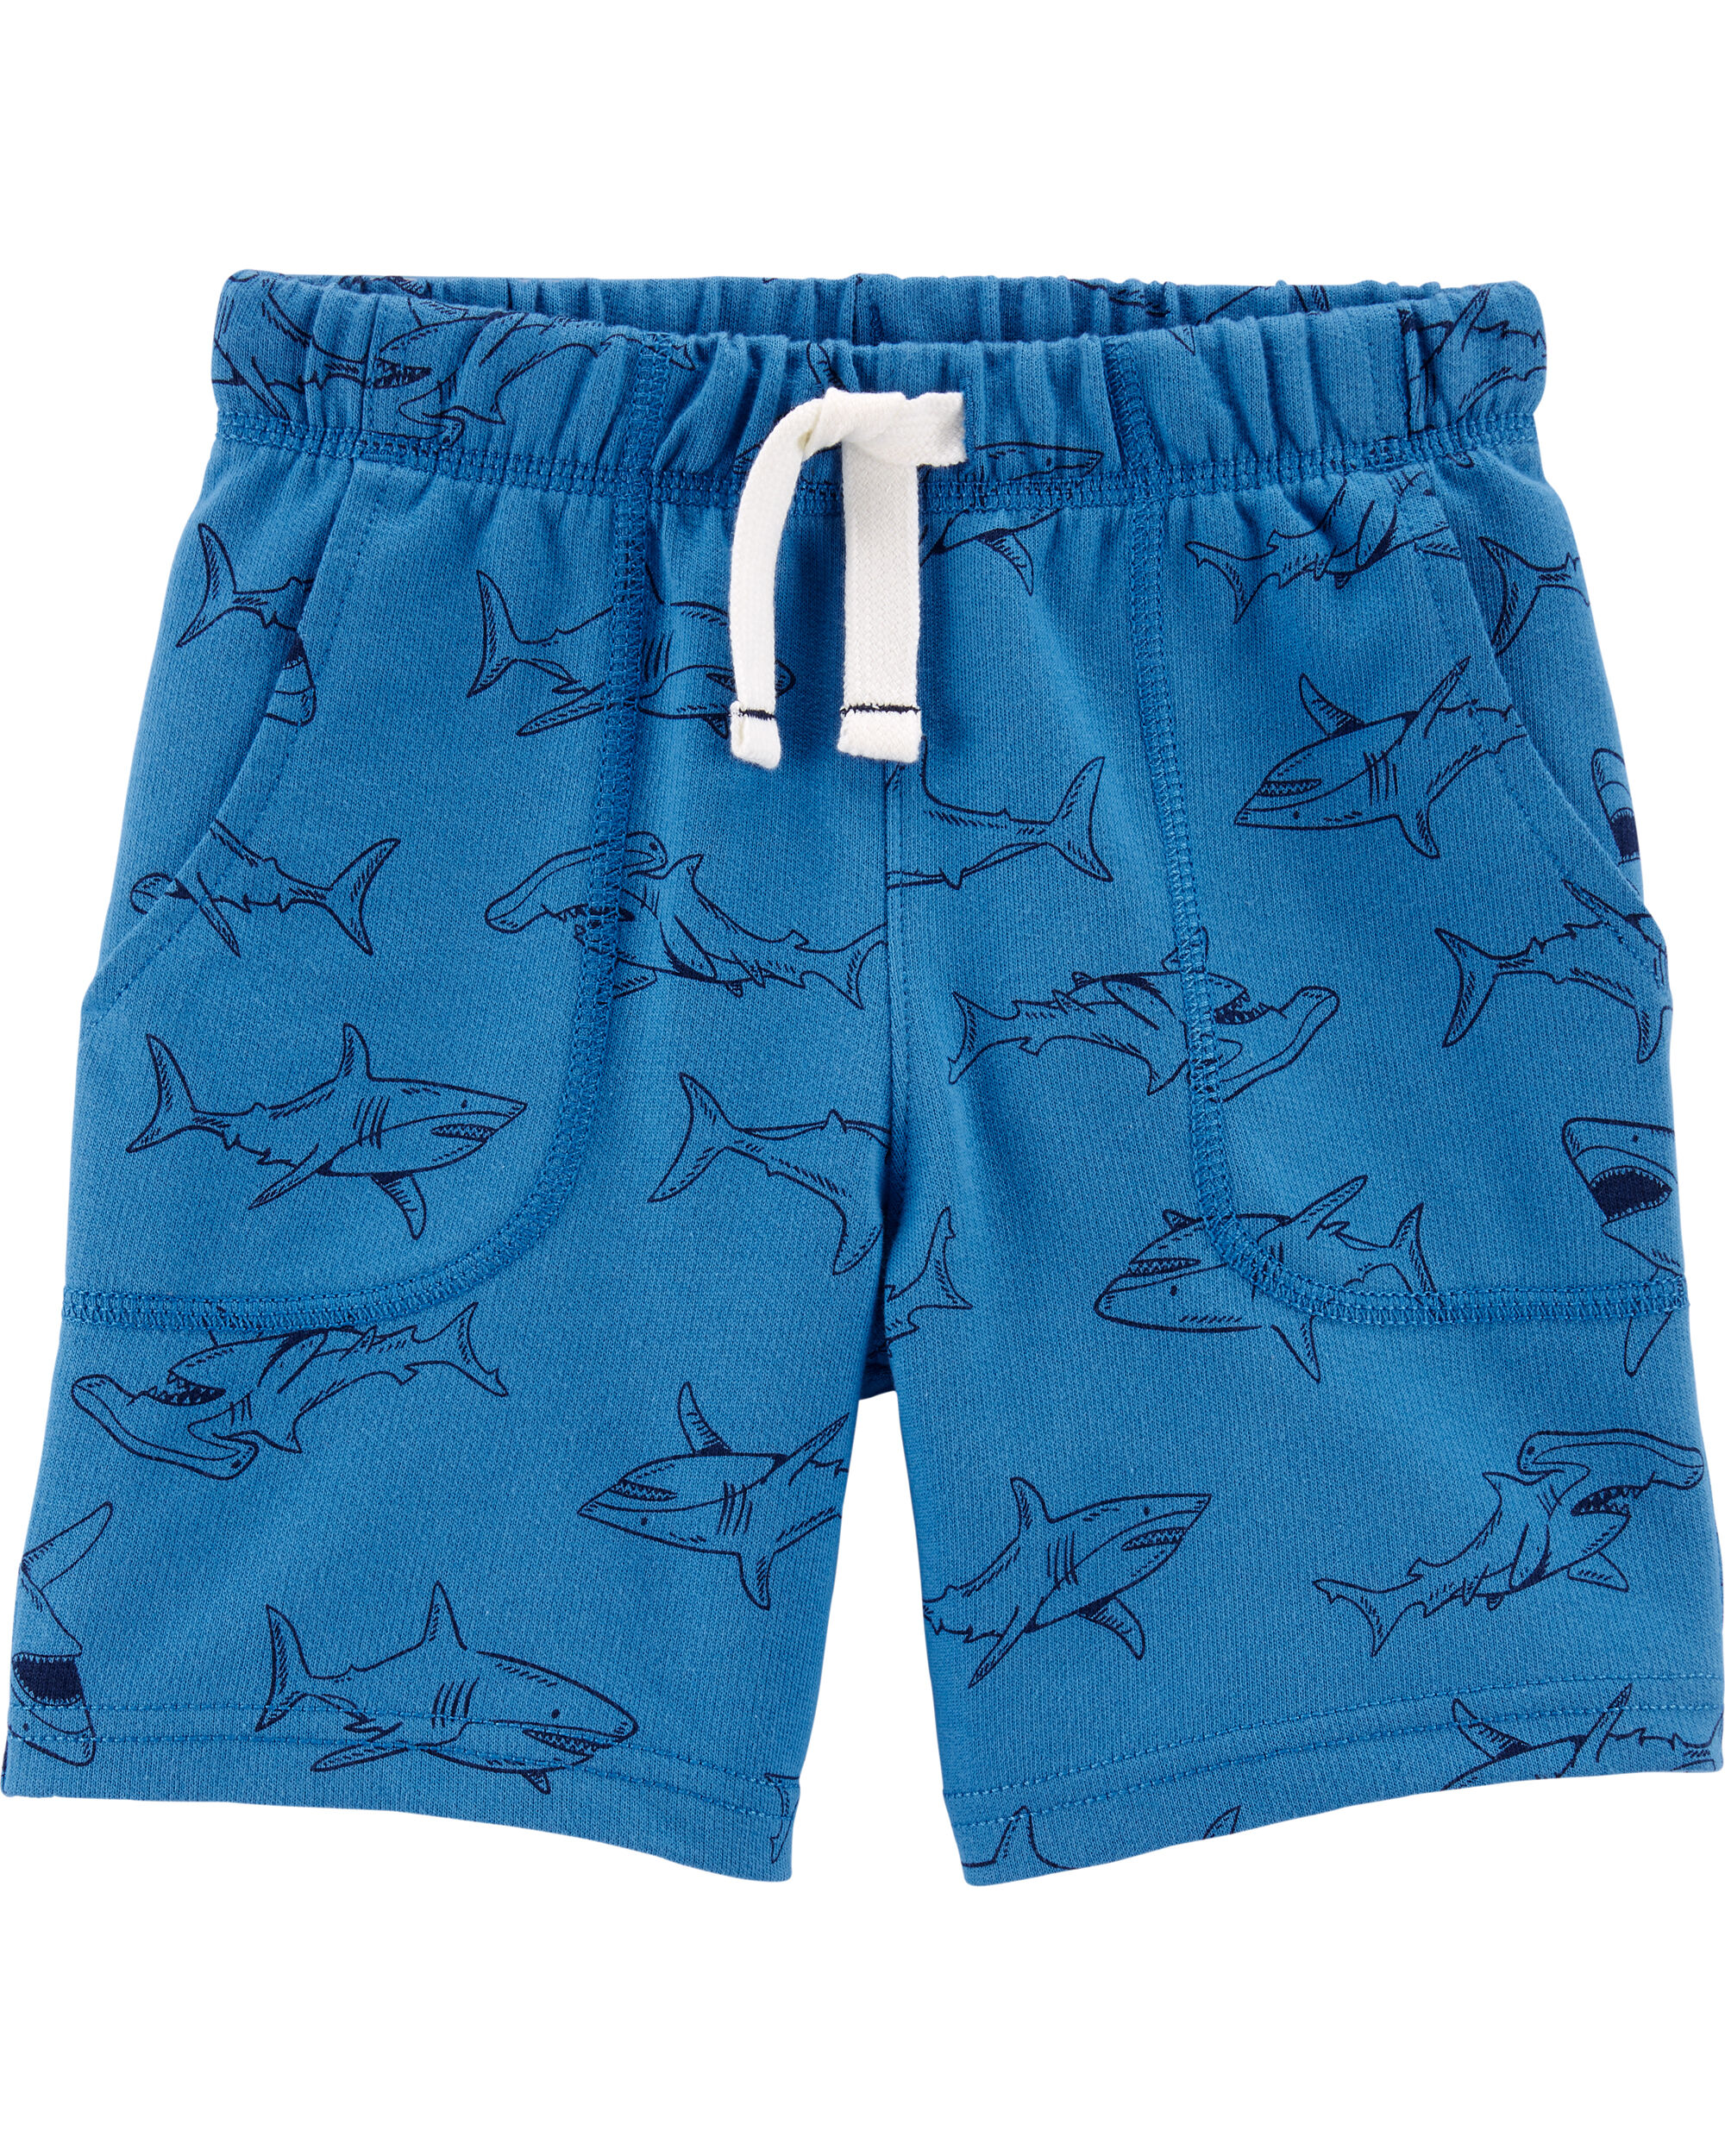 *CLEARANCE* Pull-On Shorts